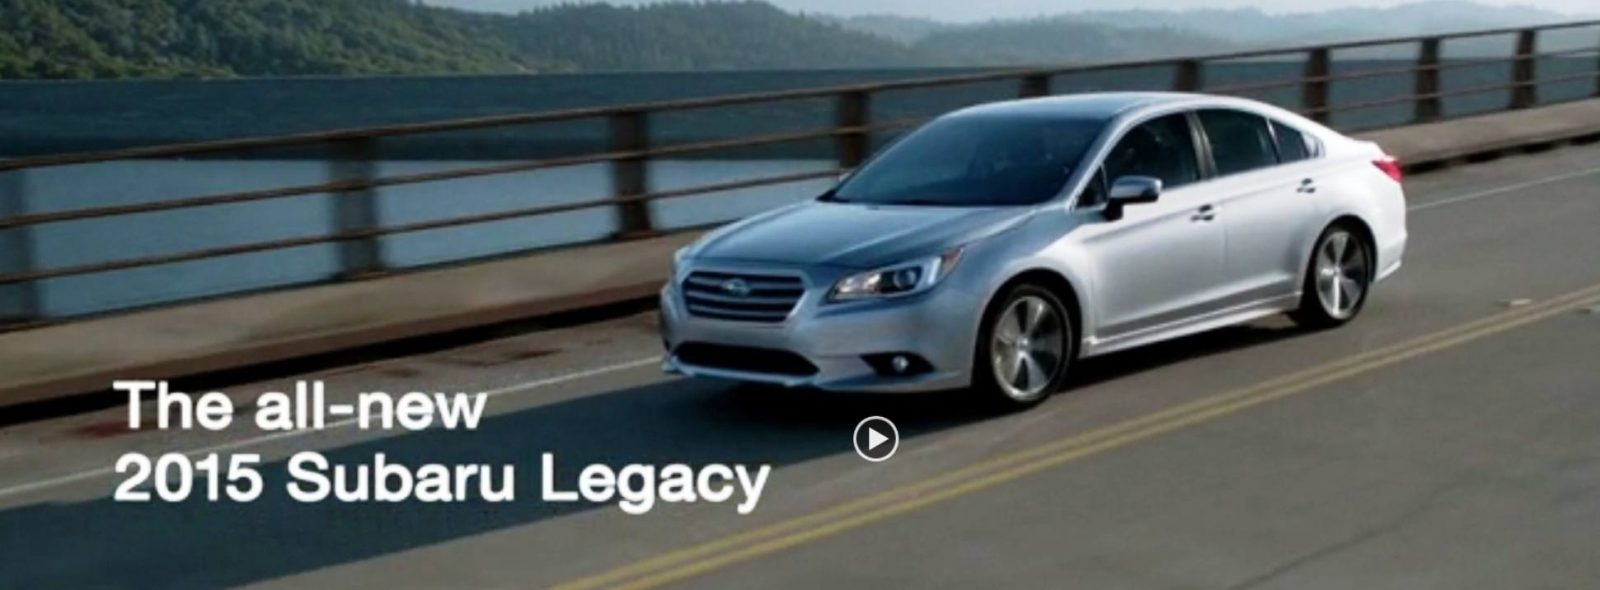 2015 Subaru Legacy Sedan -- More Lux and Tech in Cabin -- Finally Some Exterior Style -- Even 36MPG Highway  21